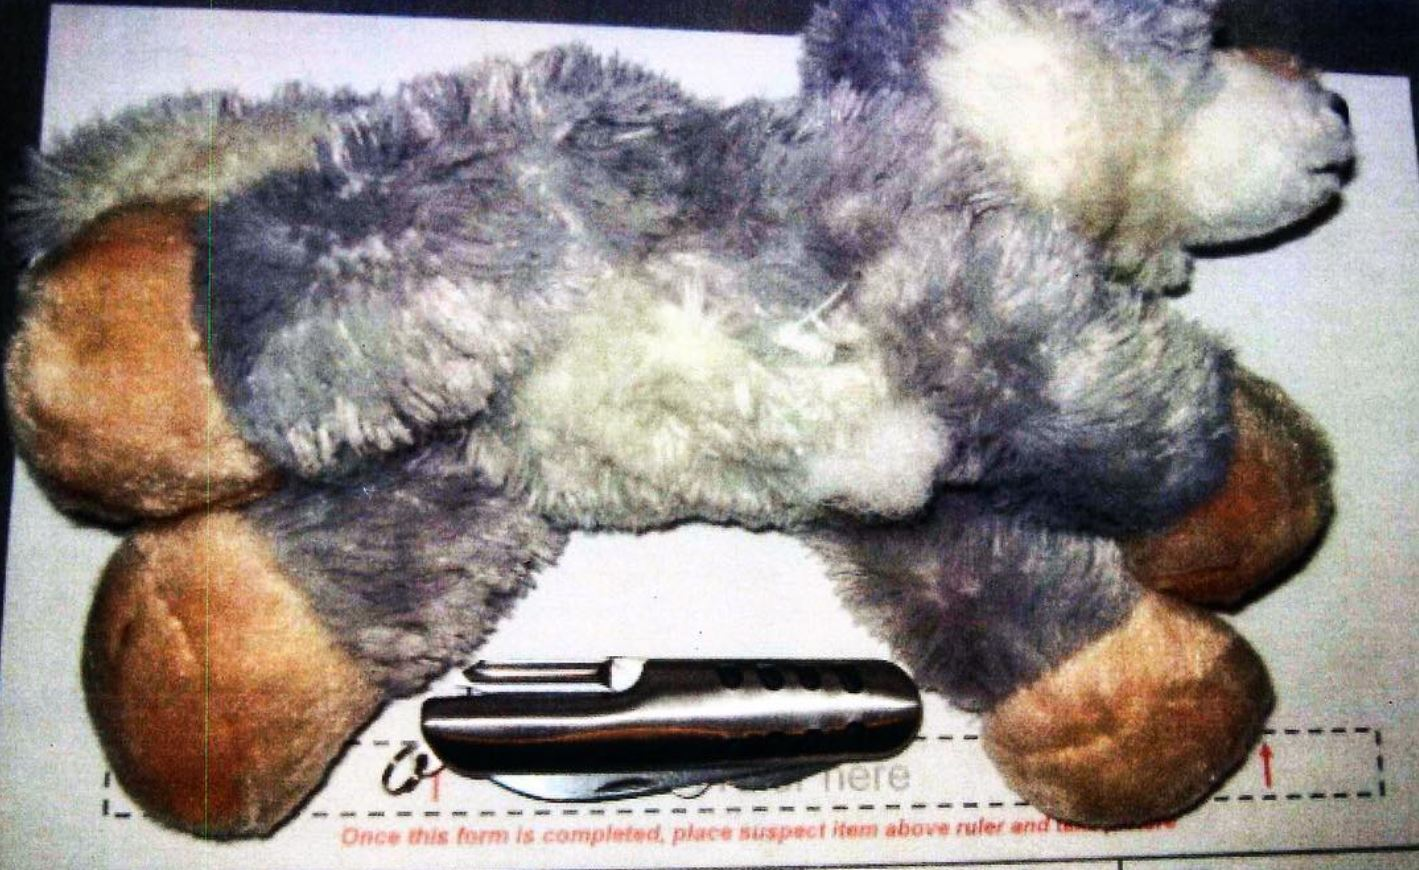 a knife sewn inside this stuffed animal at Tampa International Airport.